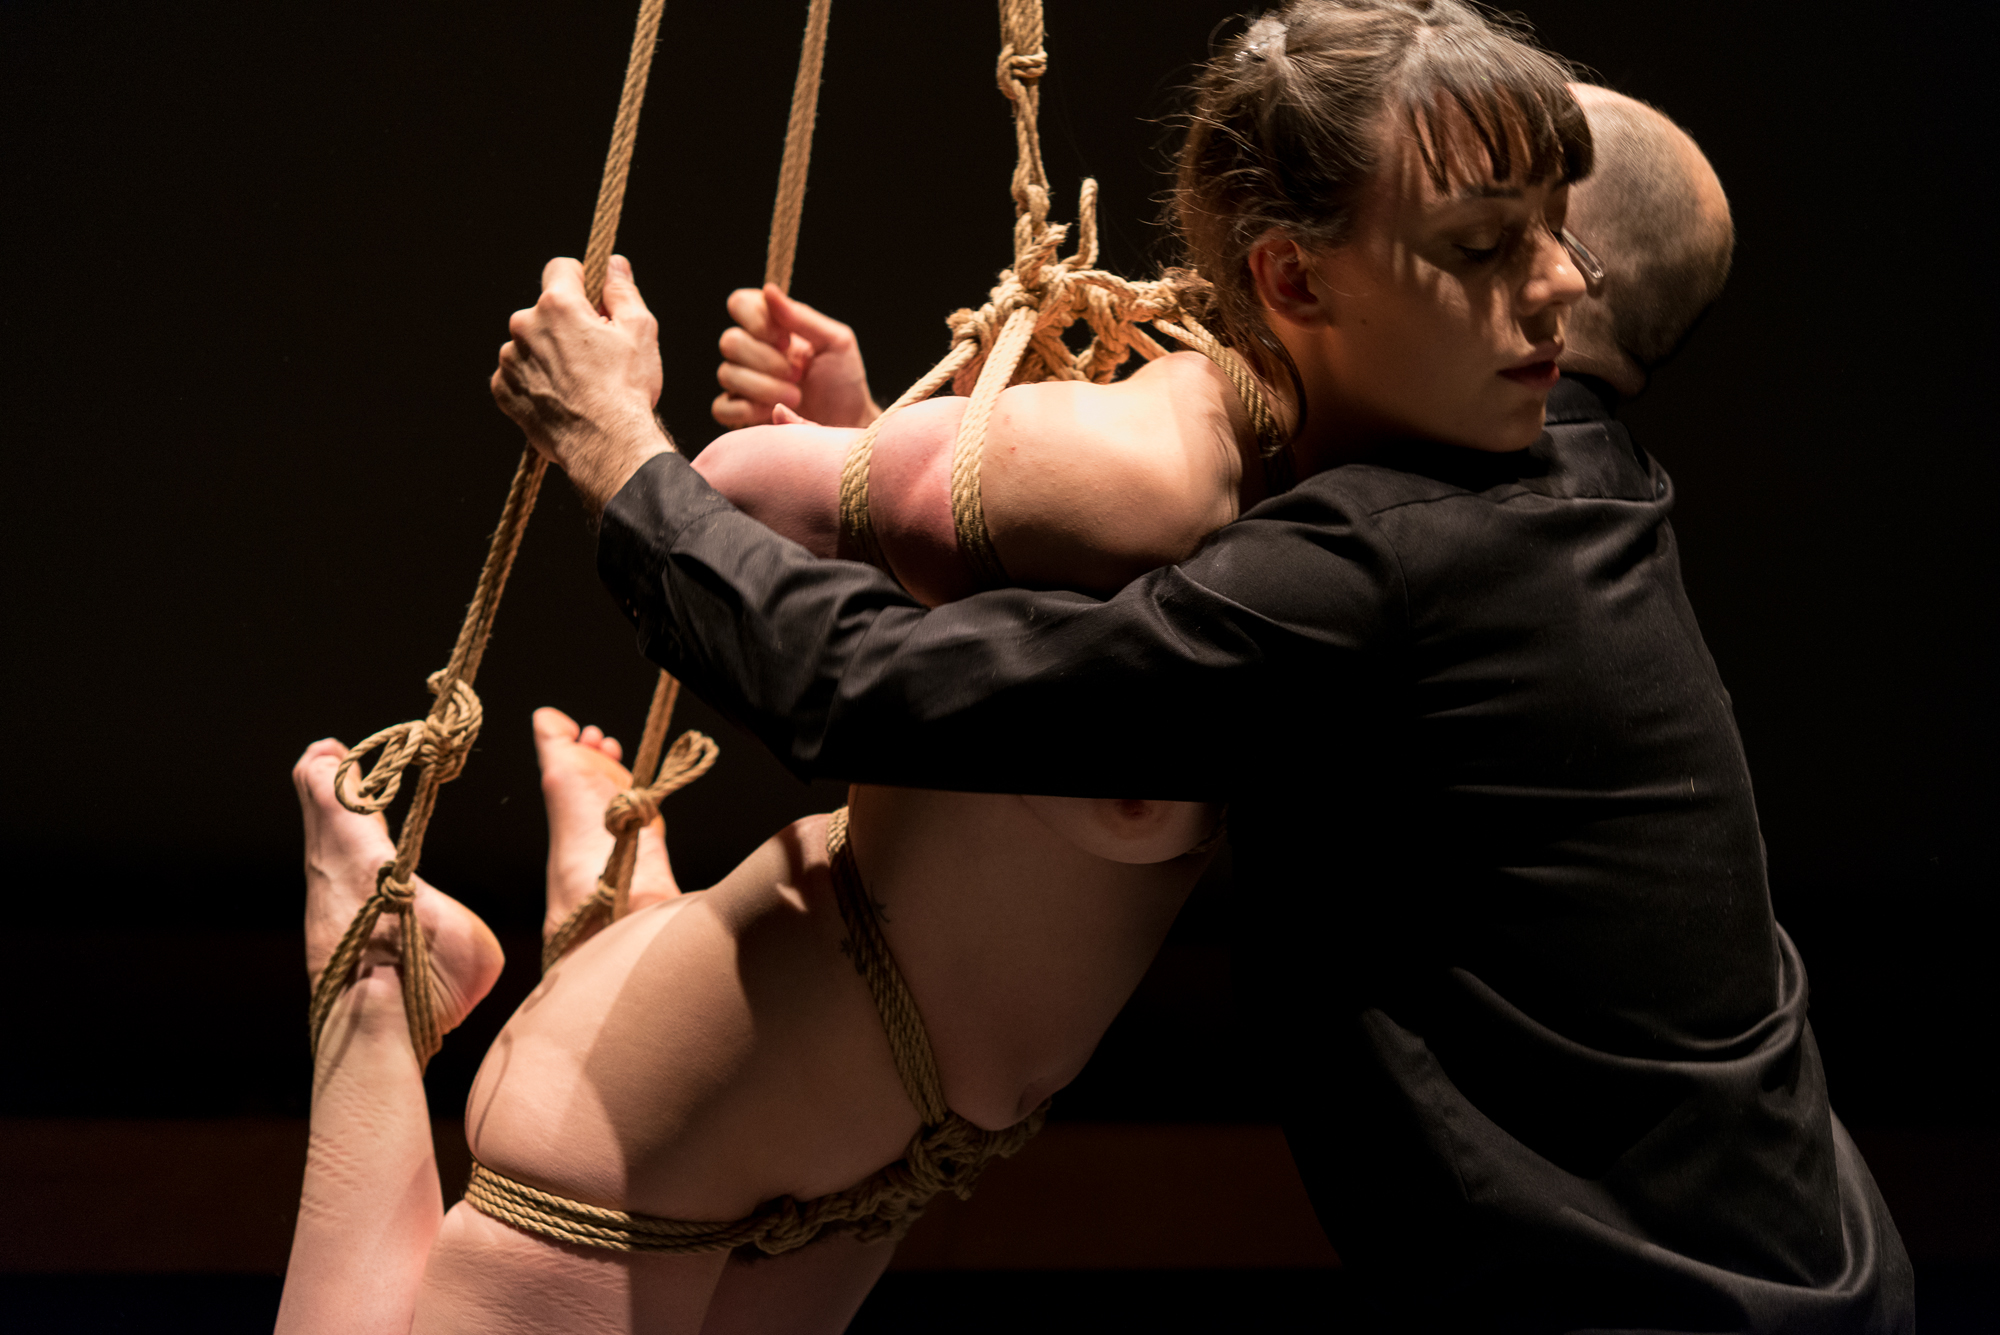 Pedro tying Gestalta during a shibari performance at Culturgest, Lisbon